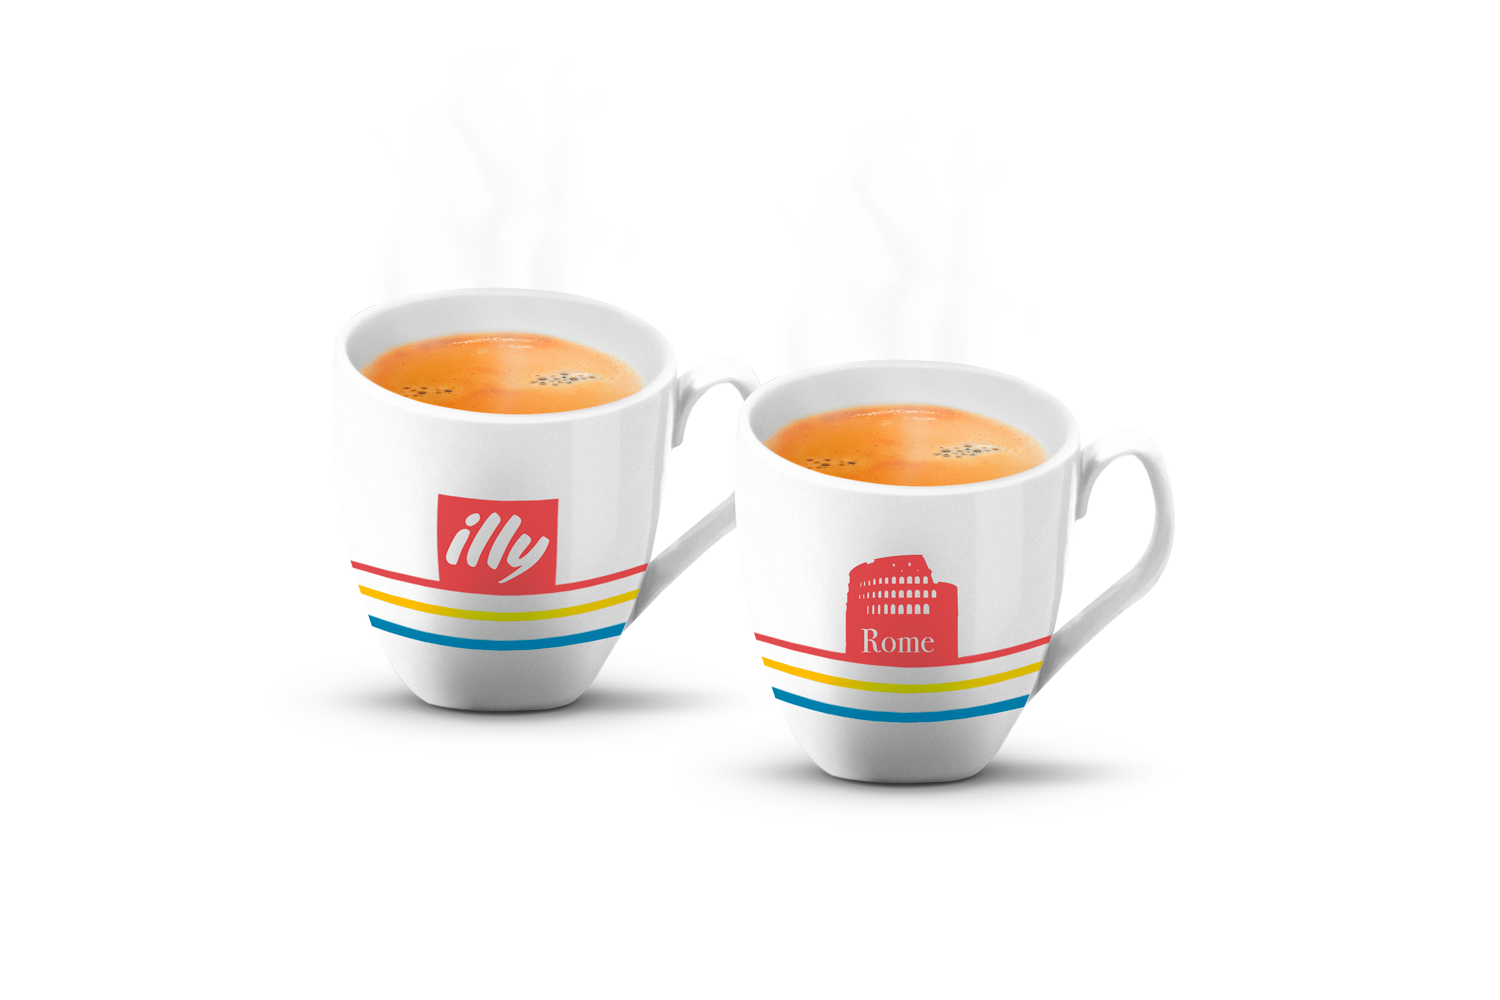 cup-illy